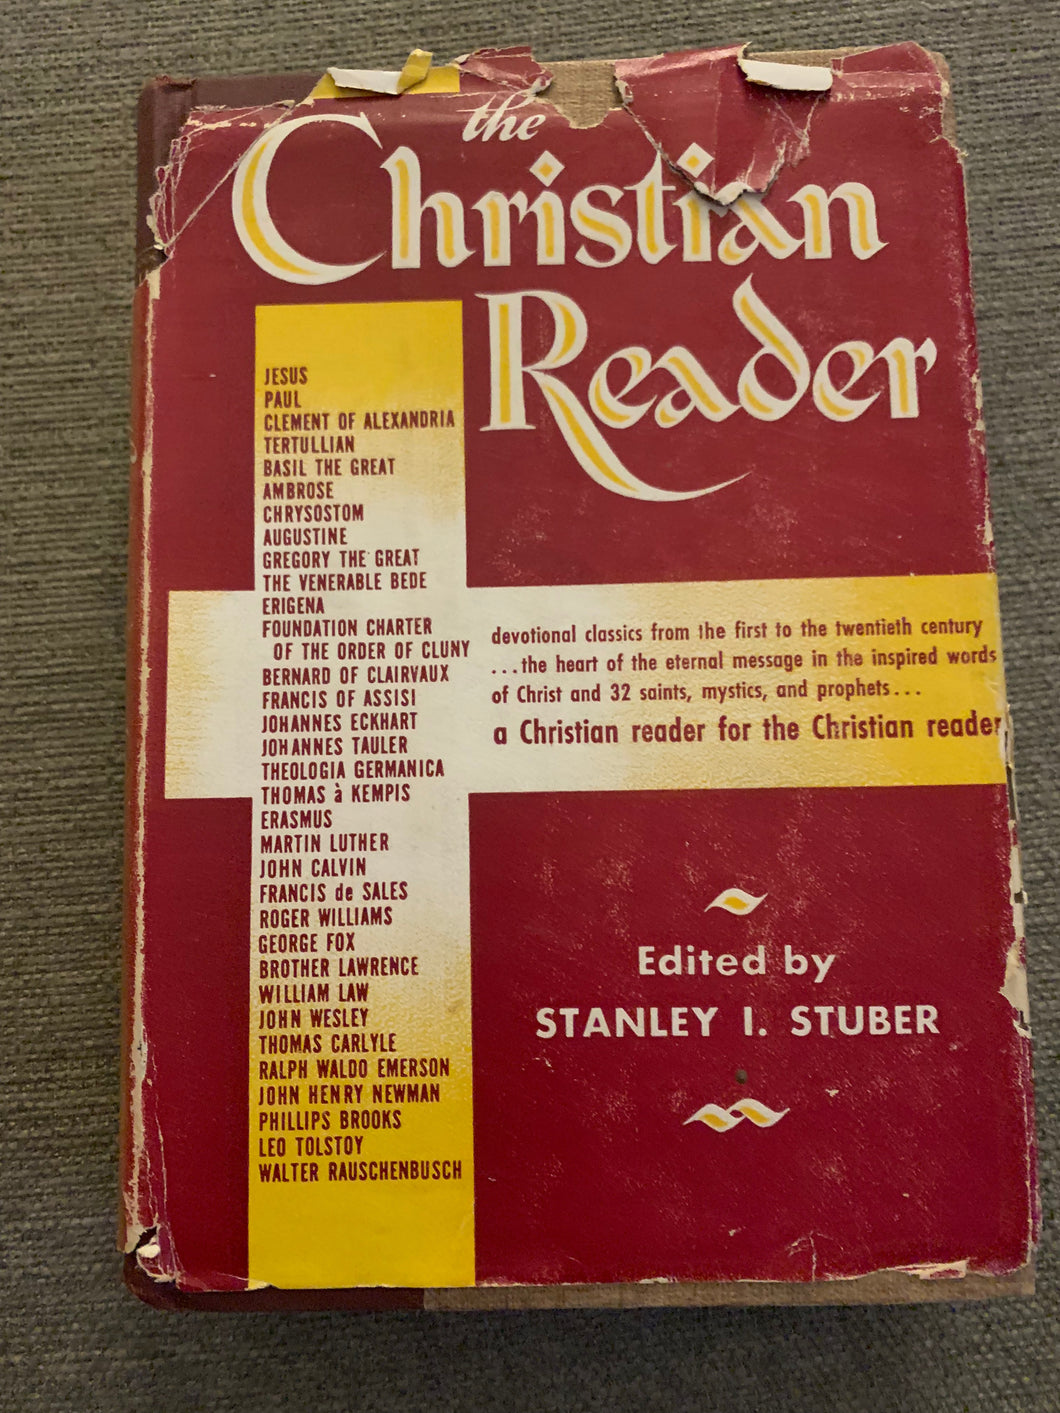 The Christian Reader by Stanley I. Stuber